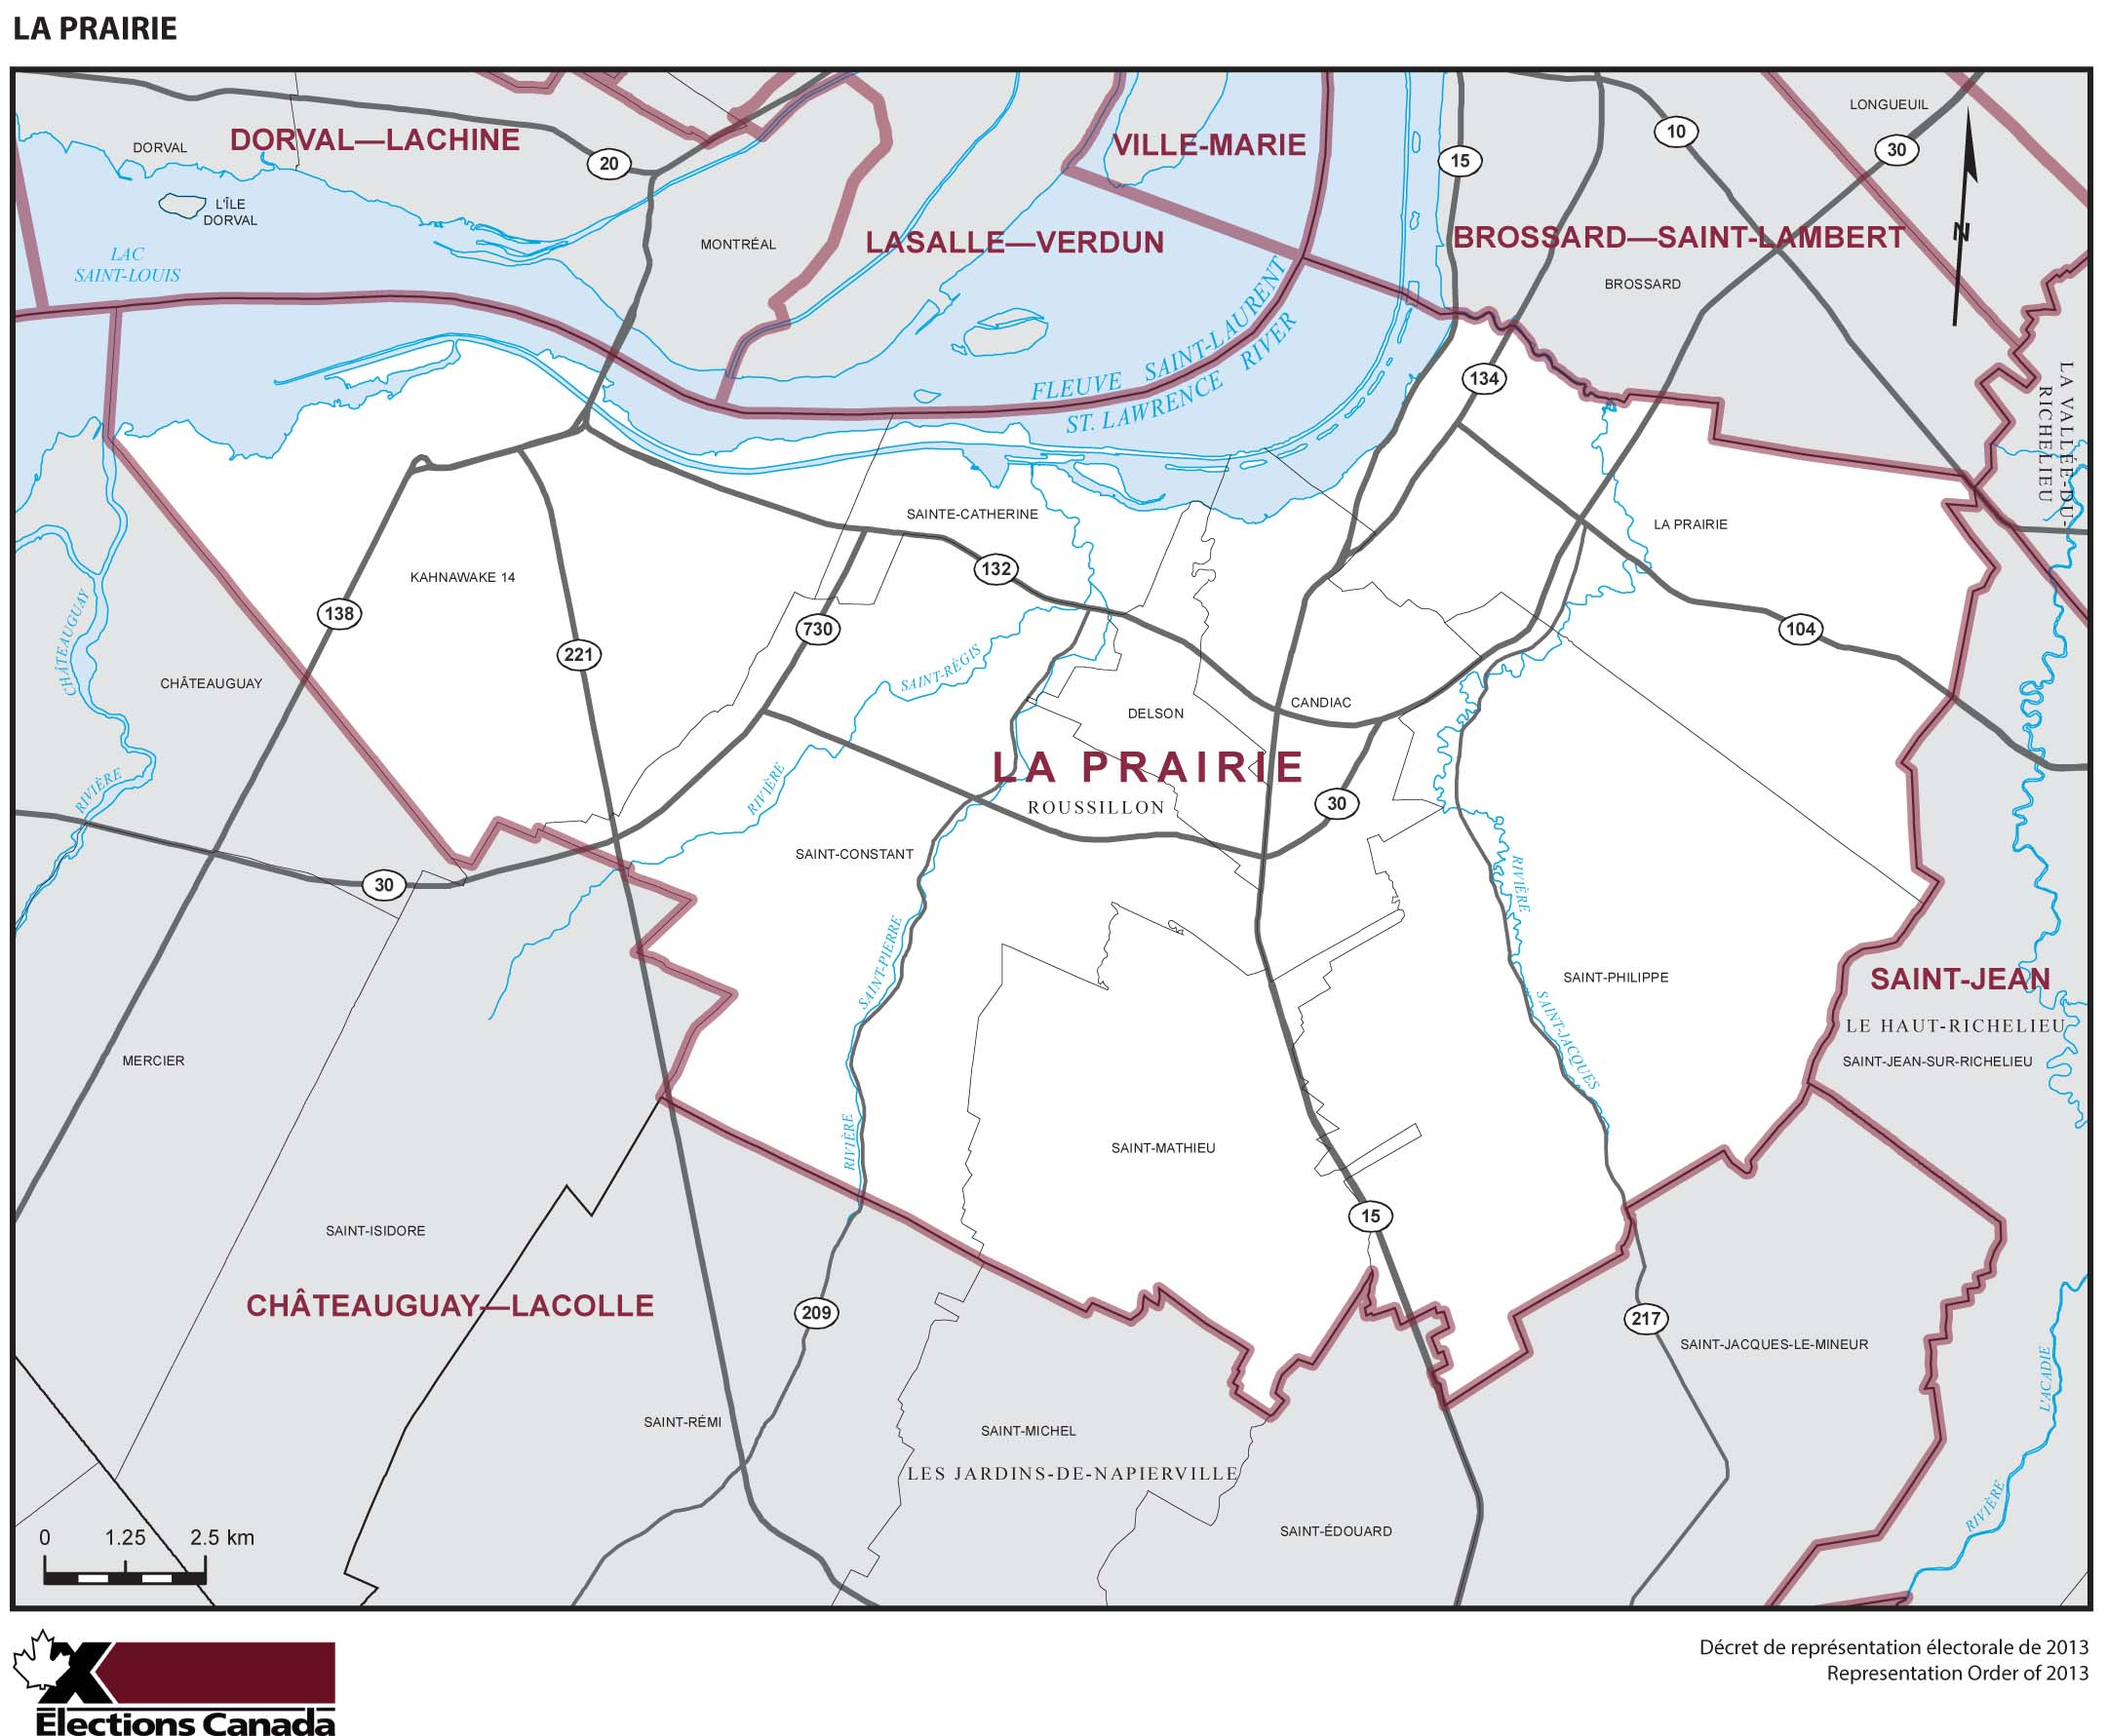 Map: La Prairie, Federal electoral district, 2013 Representation Order (in white), Quebec